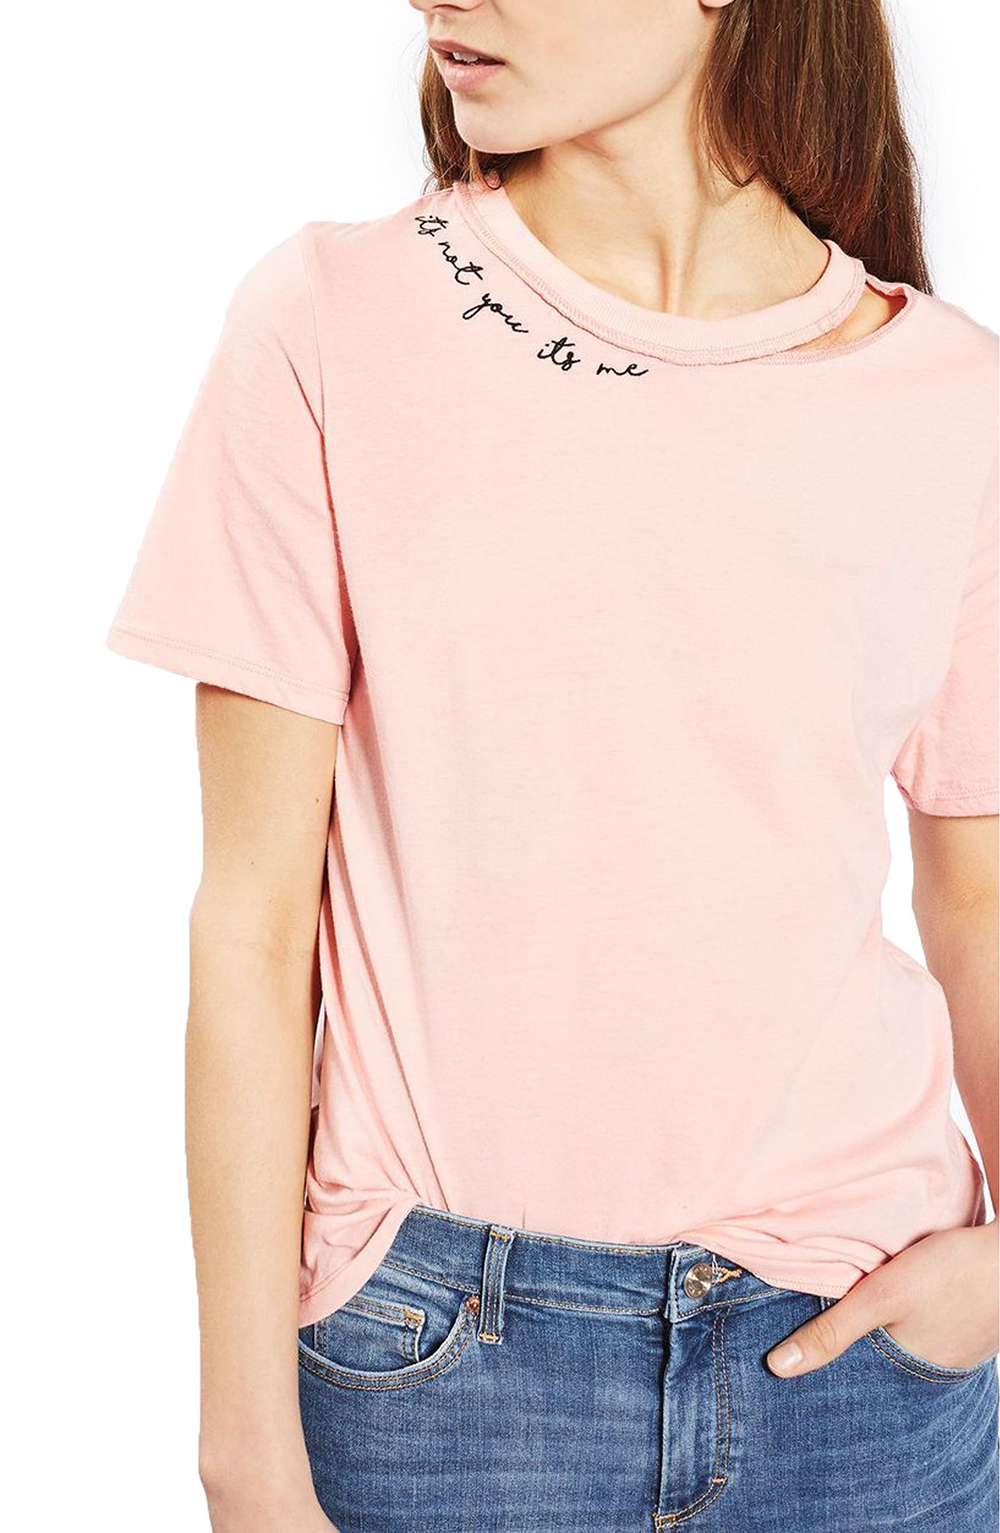 Topshop It's Not Me Slash Tee - Wardrobe Refresh: Topshop for Spring